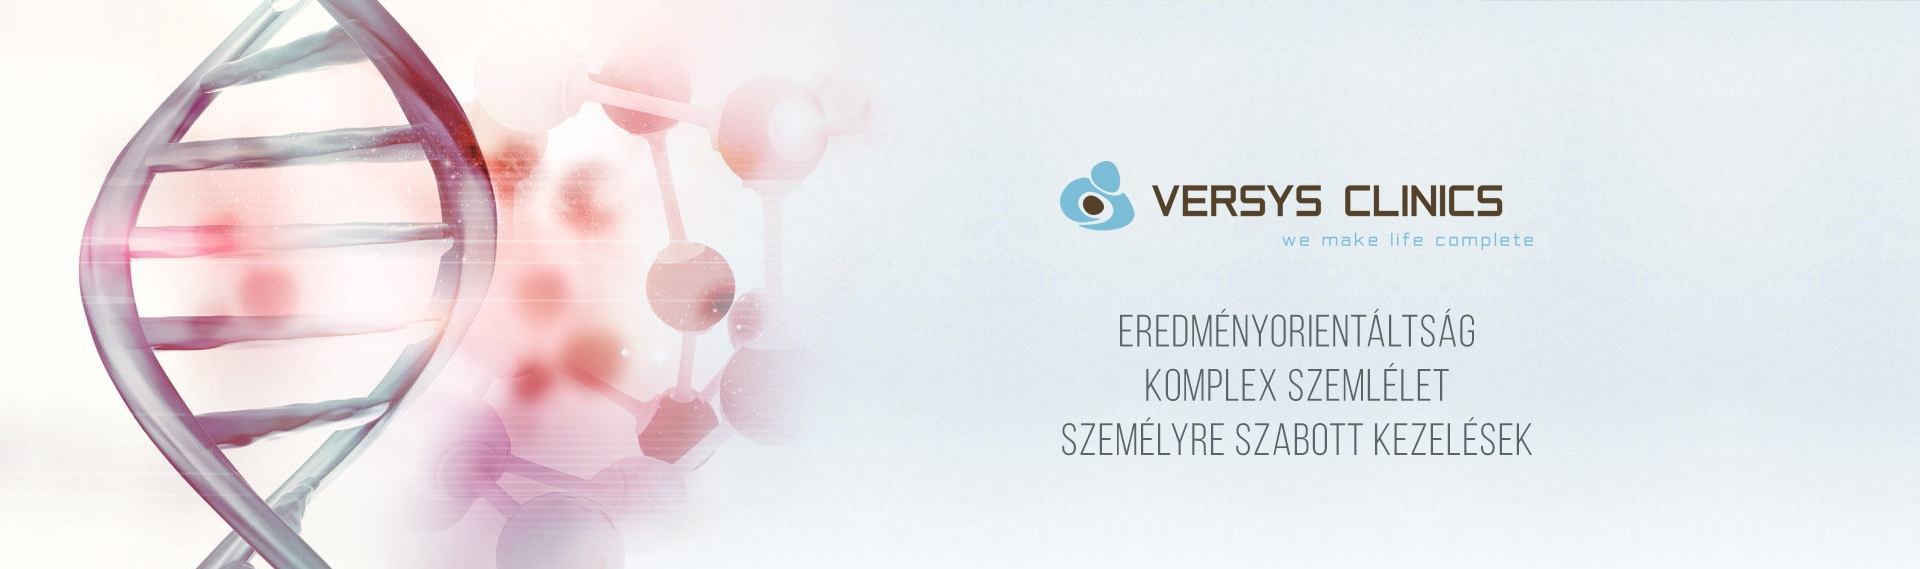 VERSYS CLINICS - GENETIC CENTER